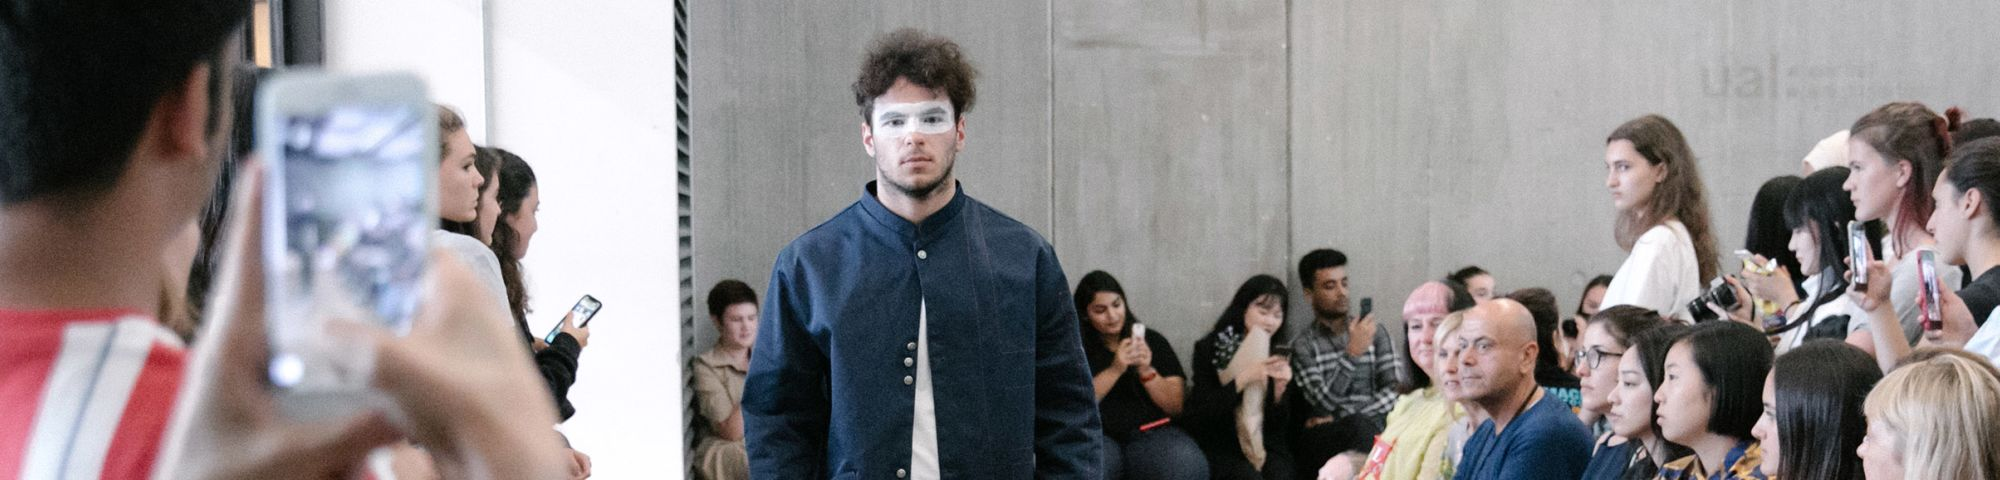 Male model walking down runway with students and staff taking photographs